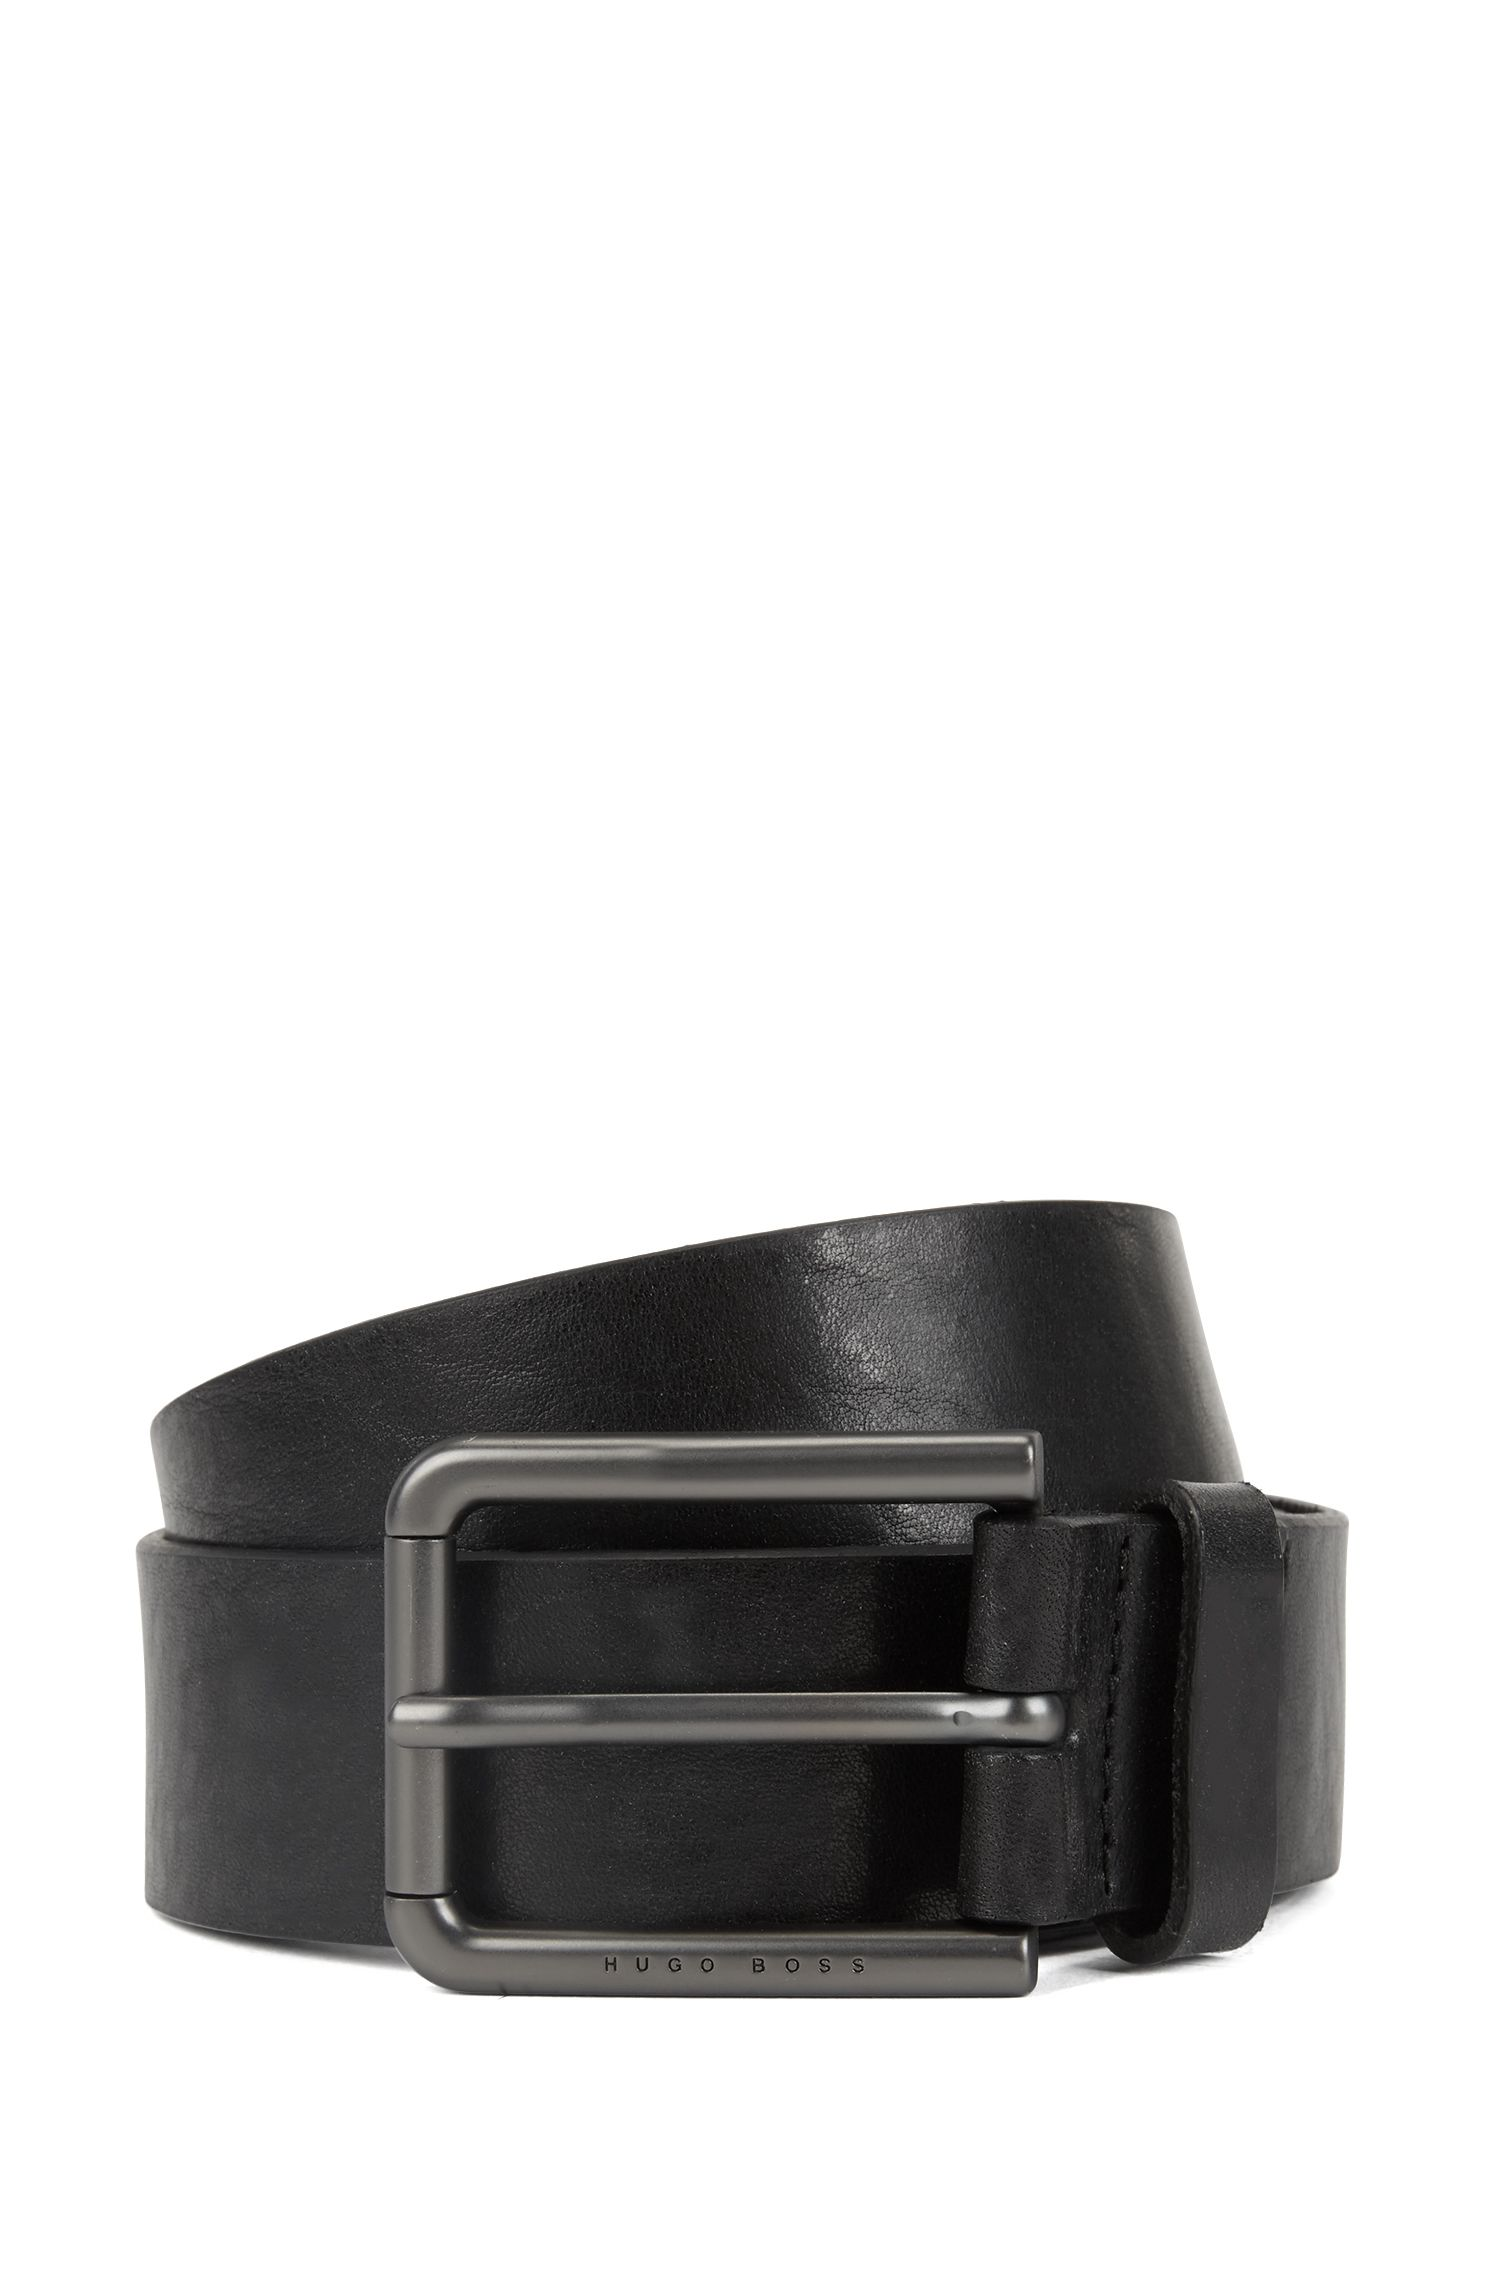 Italian leather belt with gunmetal roller buckle